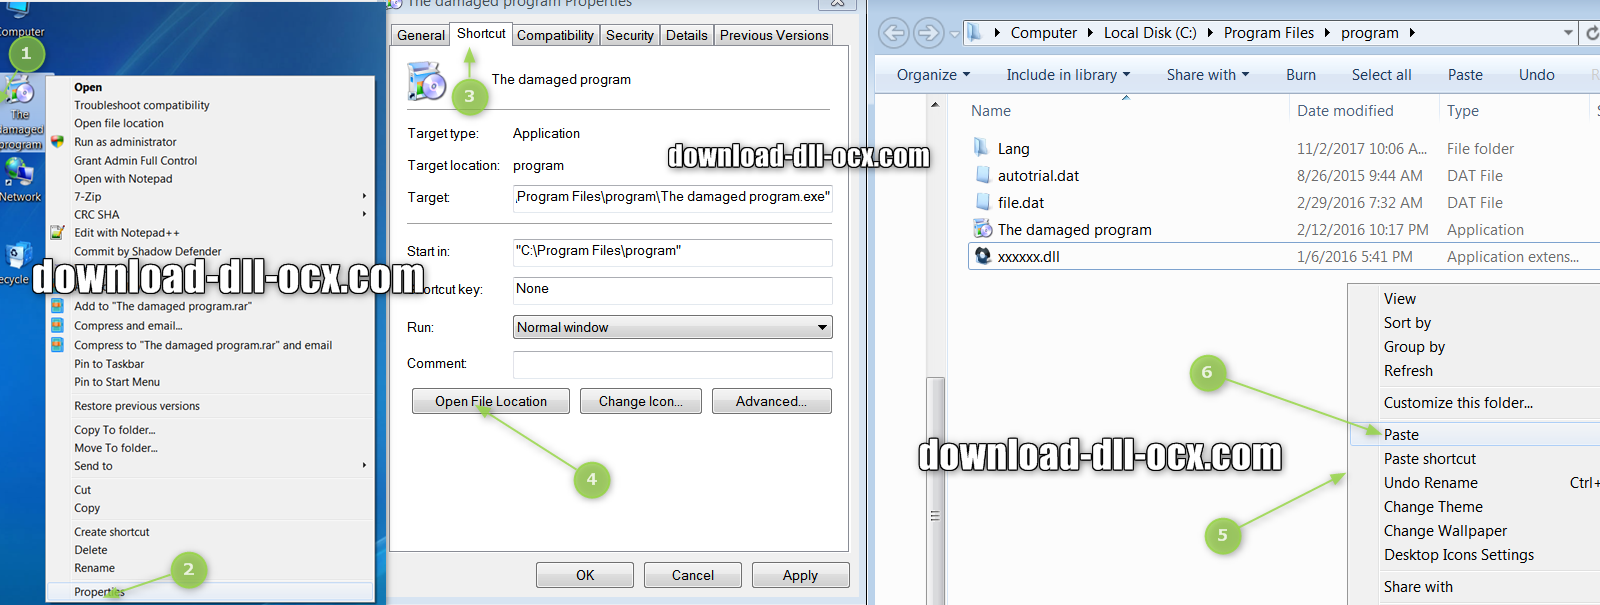 how to install Ipsmsnap.dll file? for fix missing